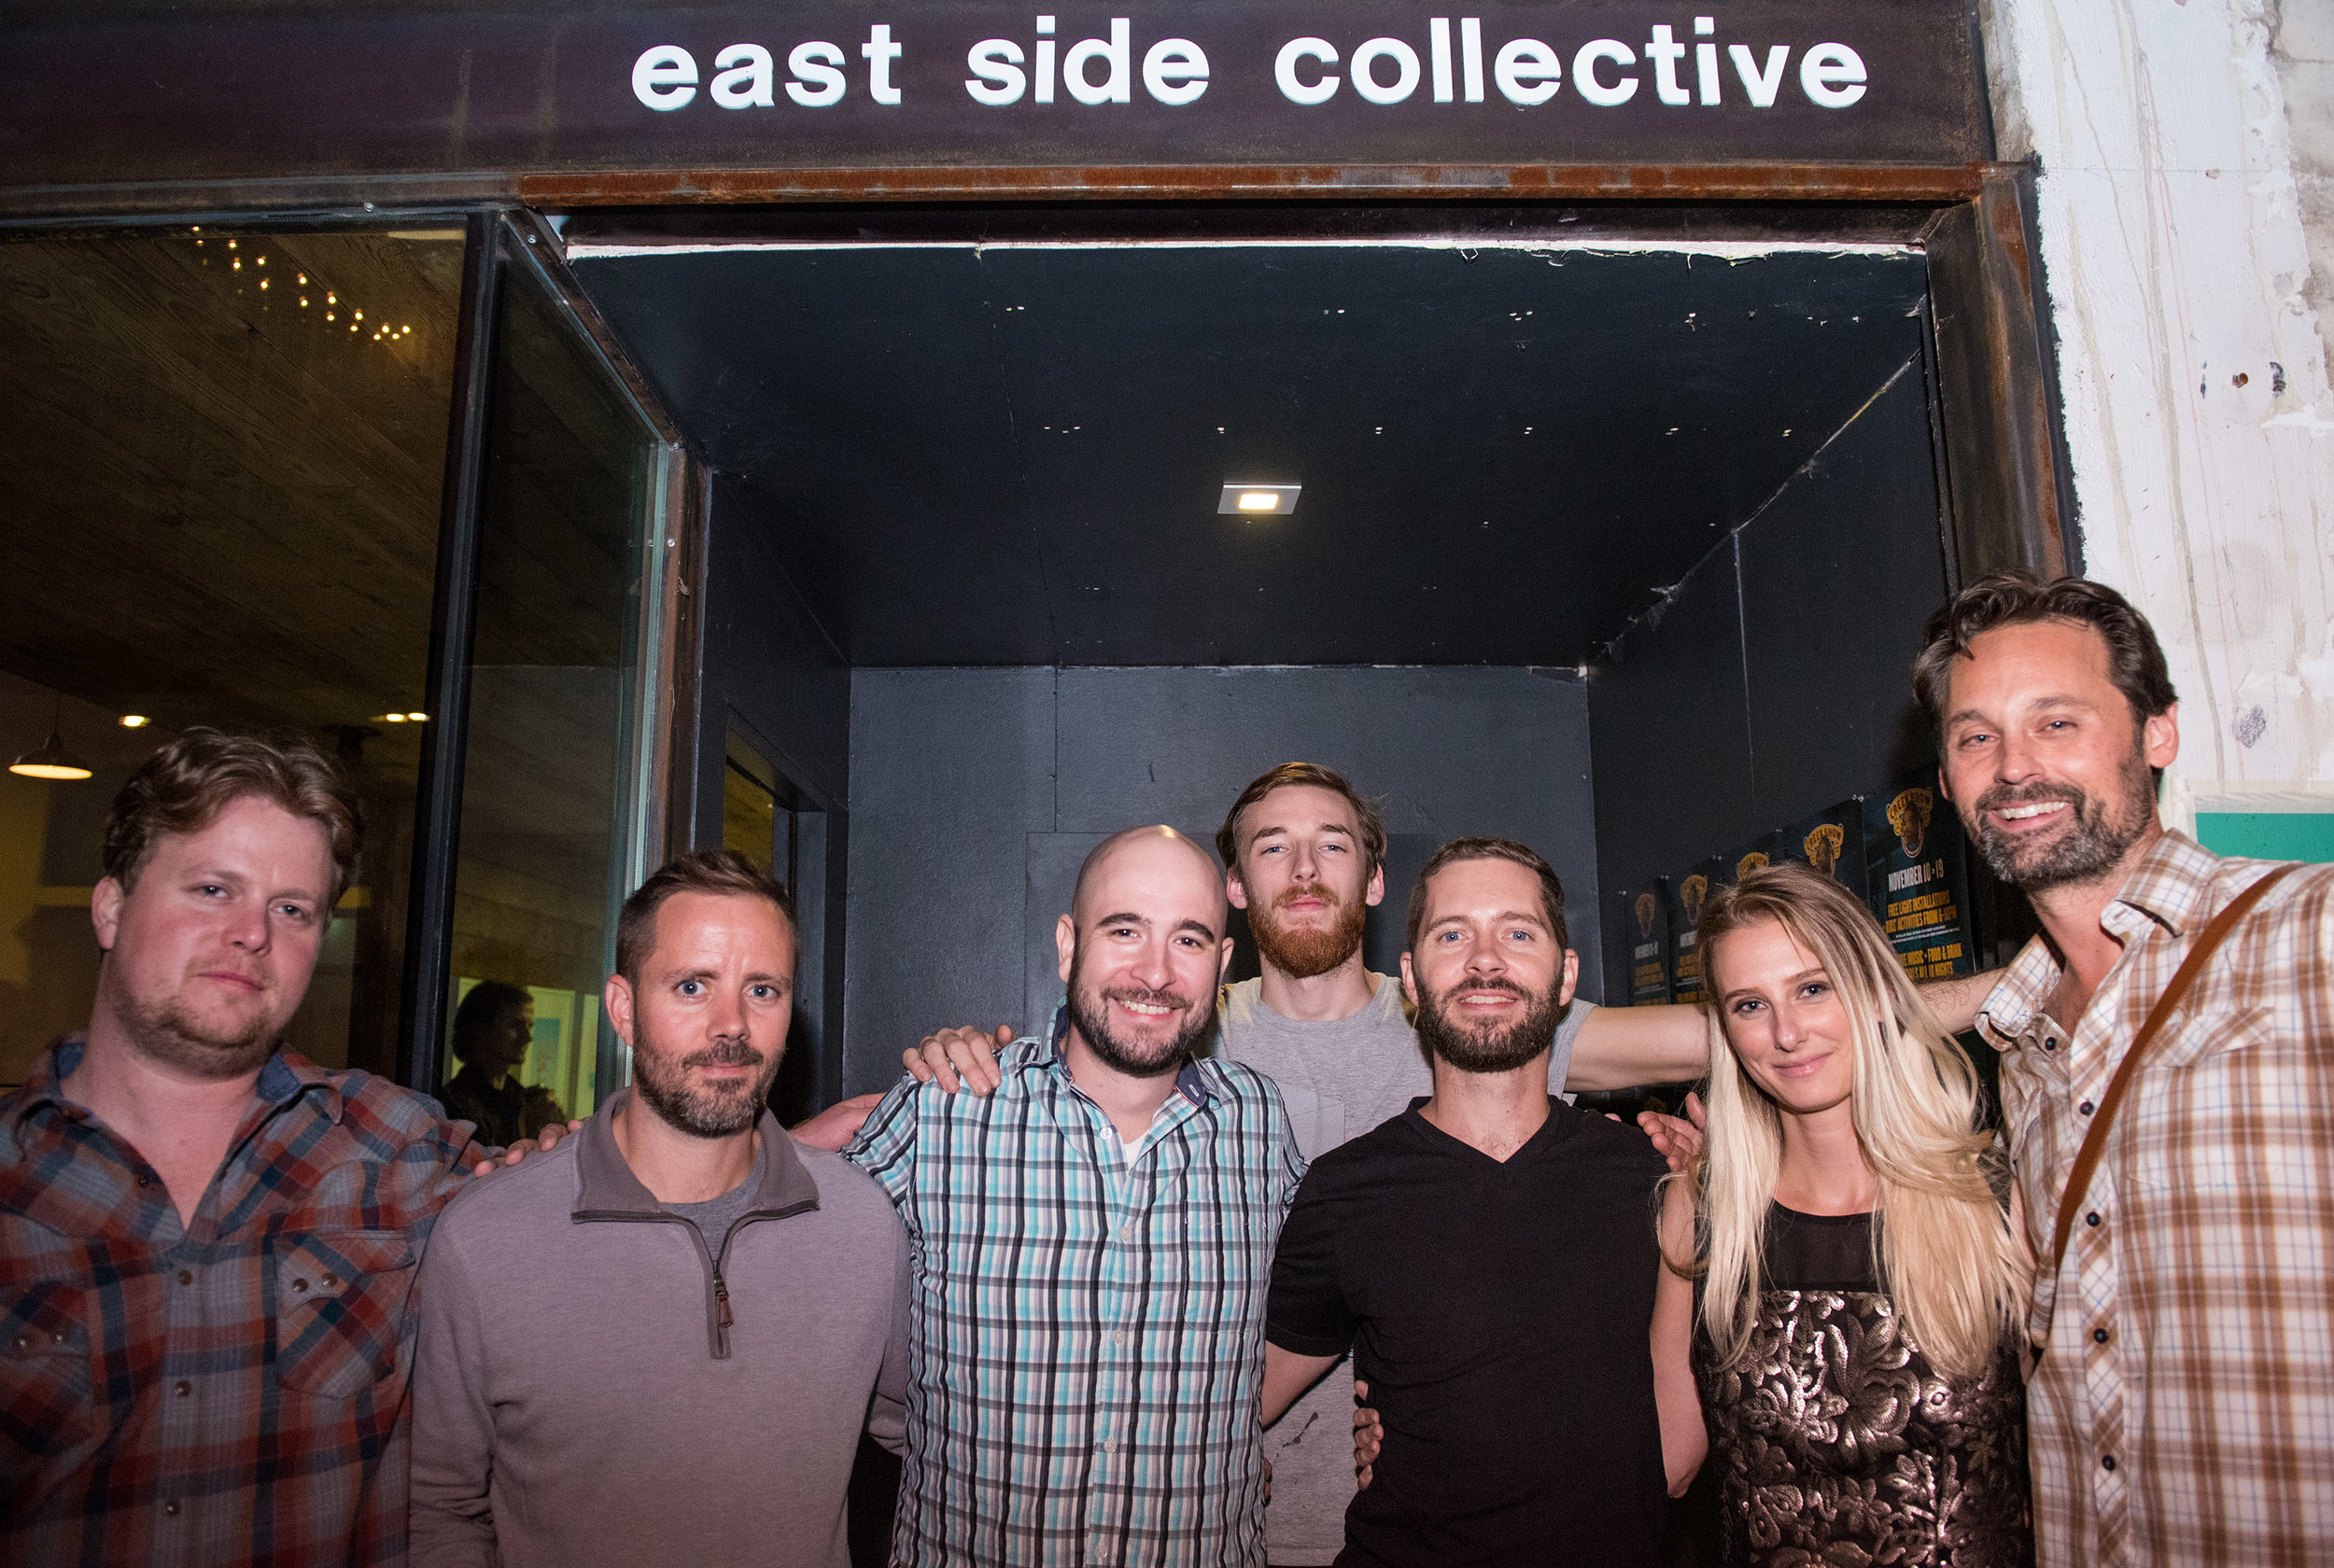 dbh-EASTopeningparty_EastSideCollective-111116-50.jpg